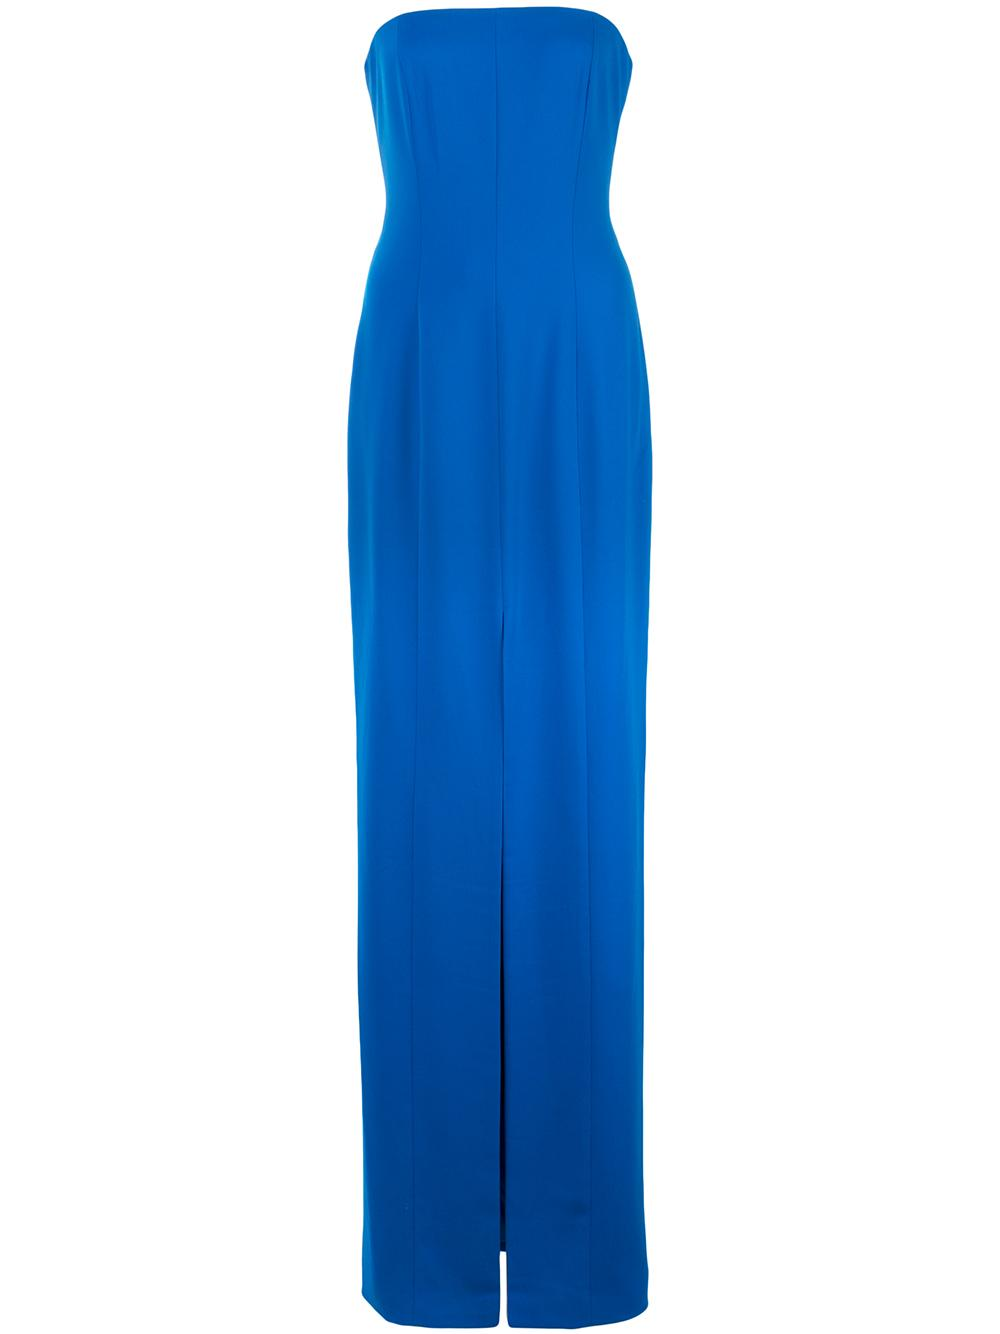 Martell Strapless Slit Gown Item # 106662